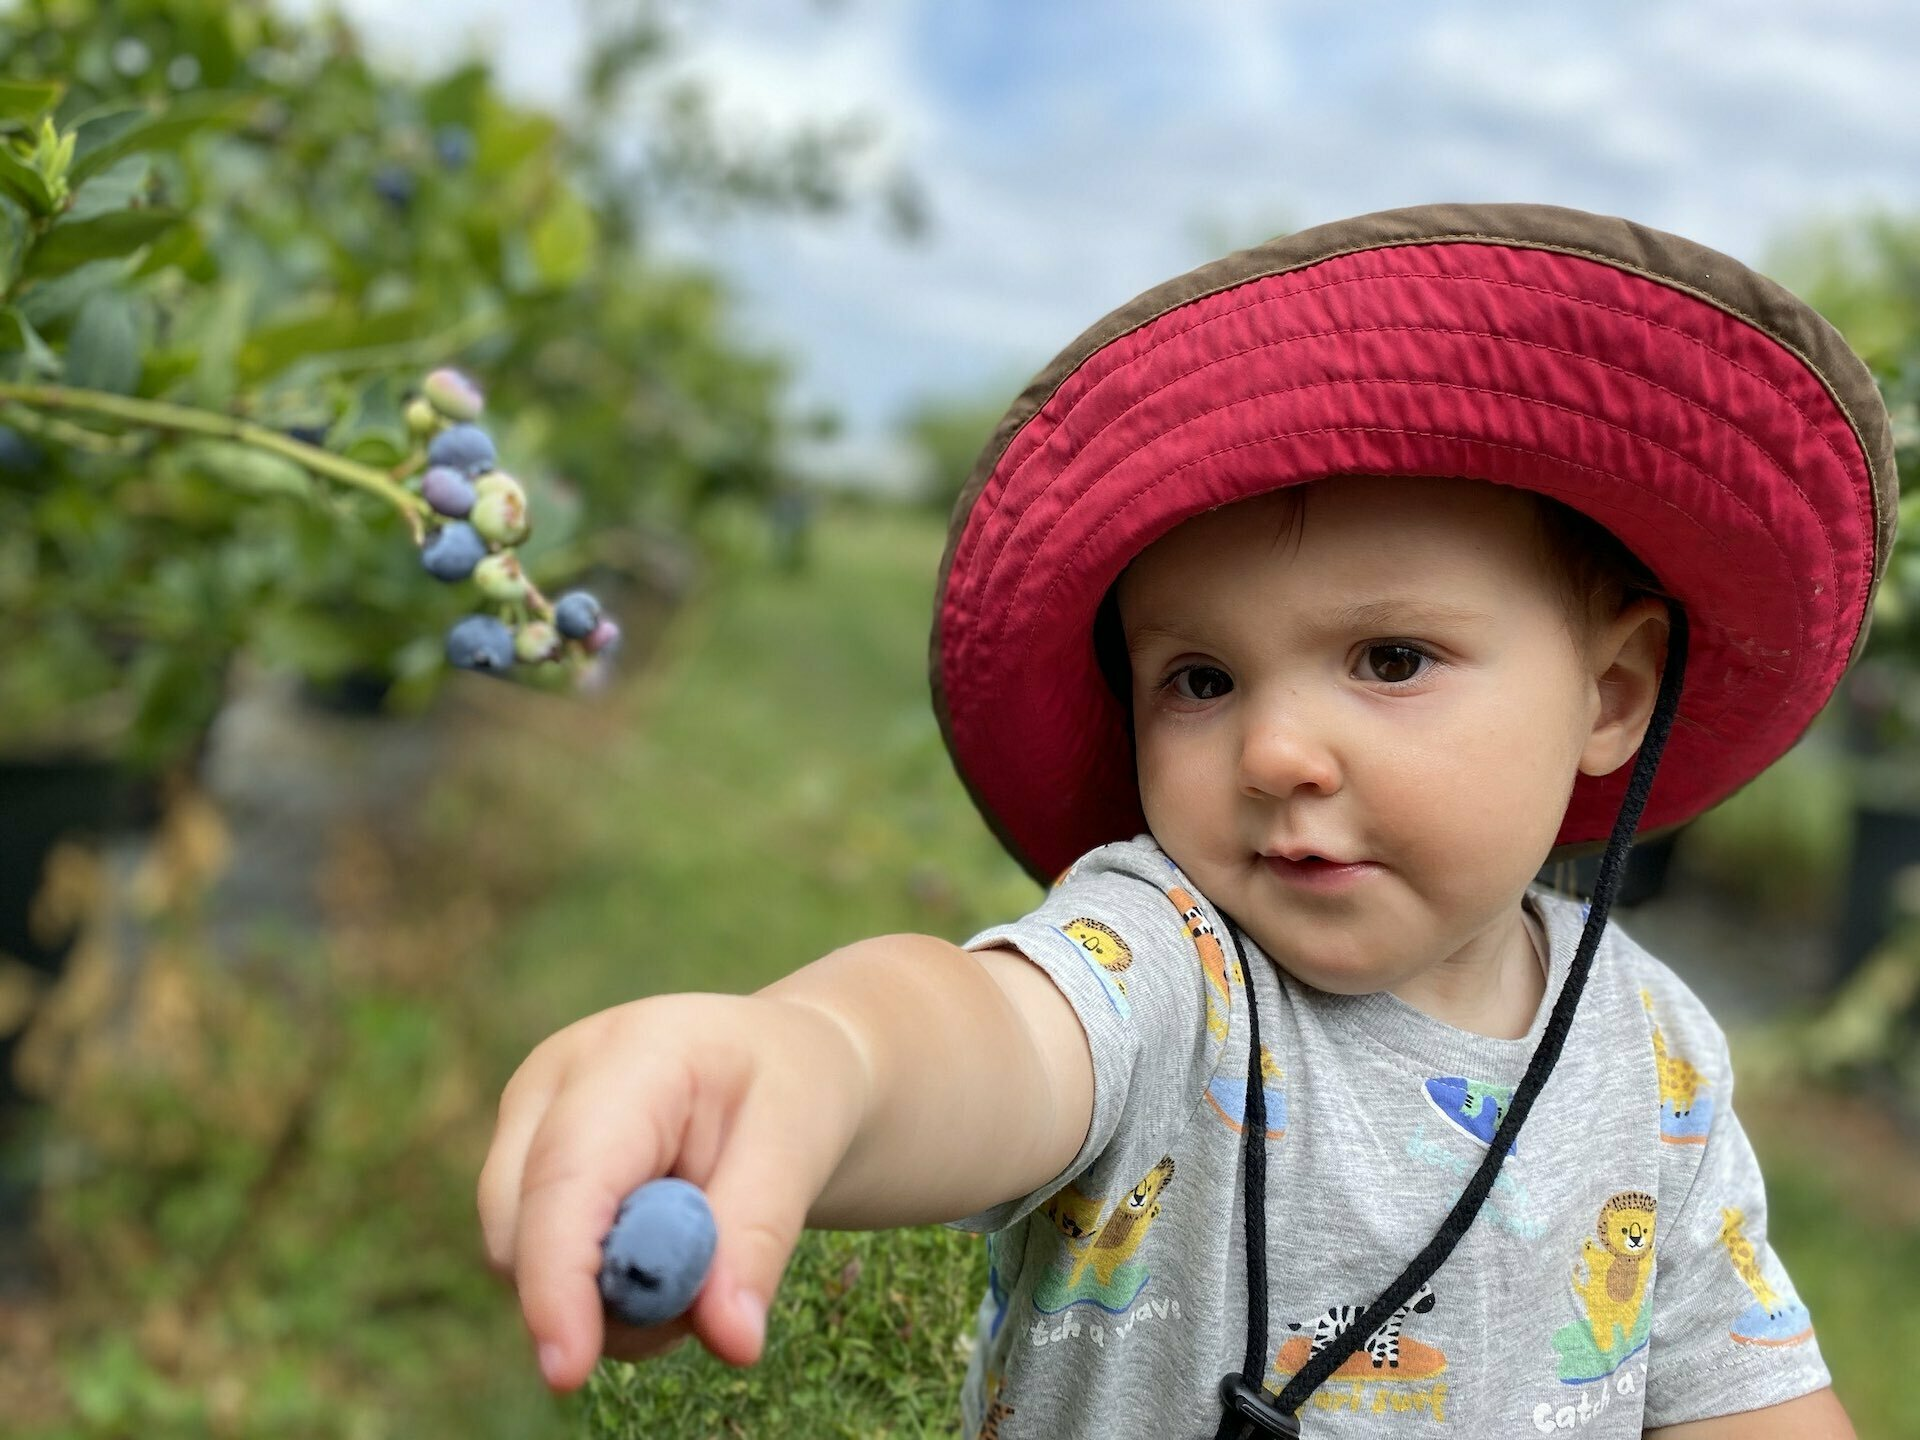 How To Travel Tasmania With Your Adventure Family - Sarah Tayler, Blueberries, Child, Family, Foraging, Food